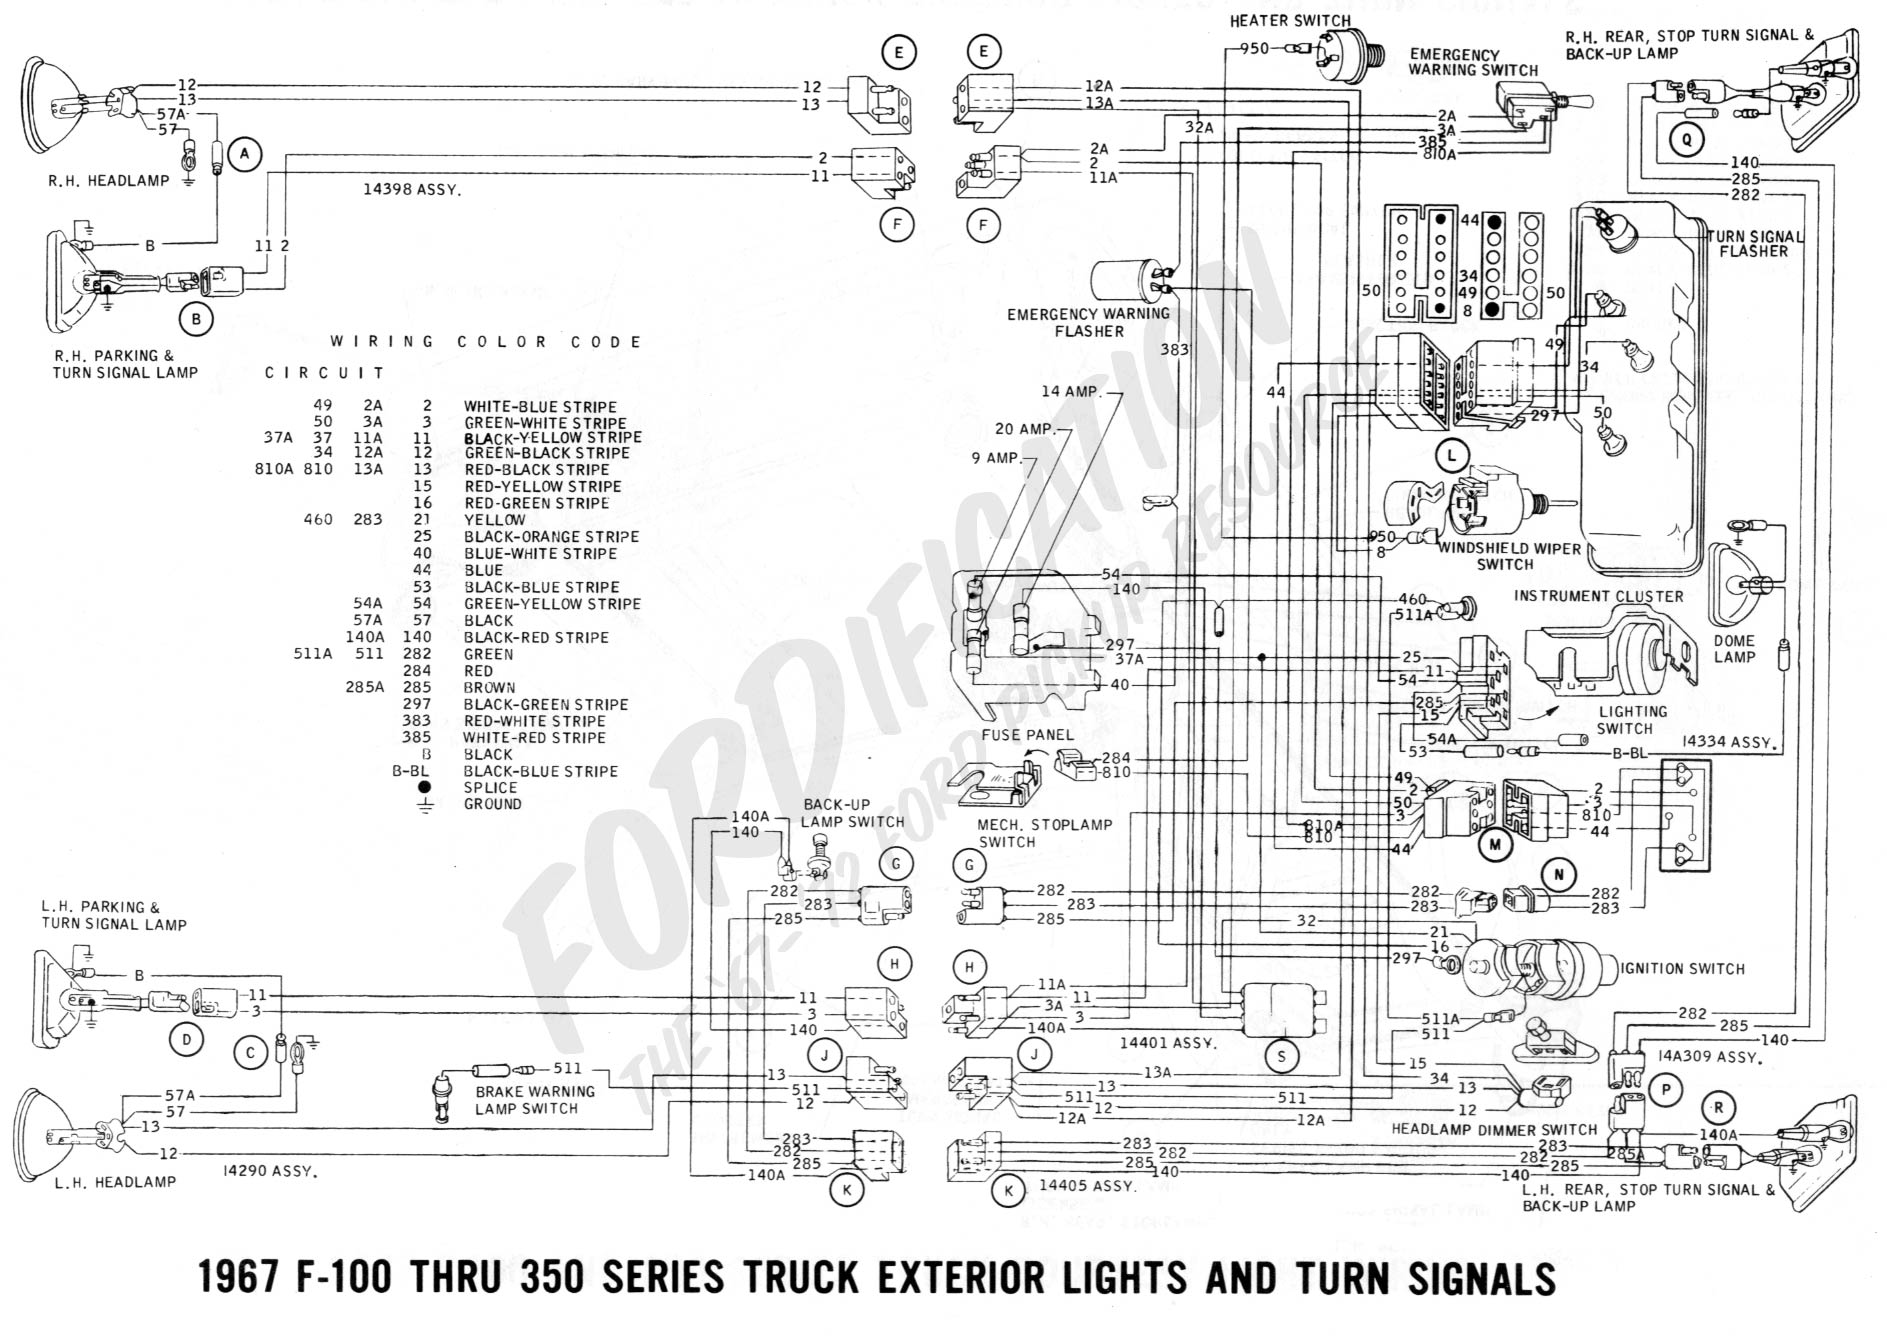 1967 ford truck wiring diagram wiring diagram schematics ford f150 radio  plug 1967 f250 wiring diagram